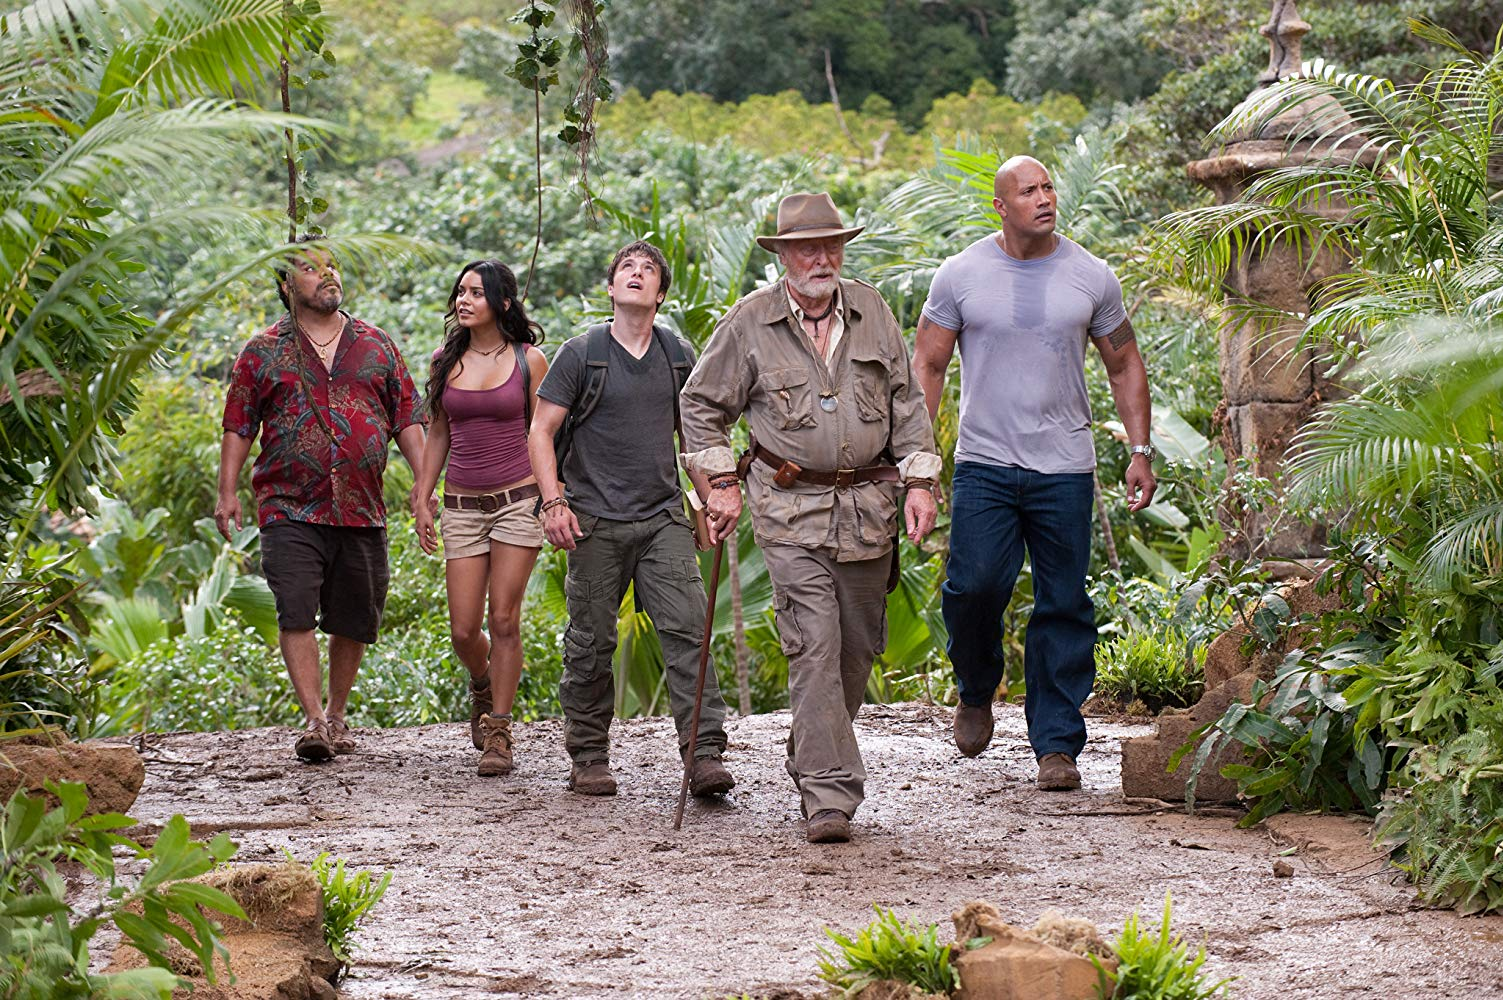 Luis Guzman, Vanessa Hudgens, Josh Hutcherson, Michael Caine, Dwayne Johnson in Journey 2: The Mysterious Island (2012)